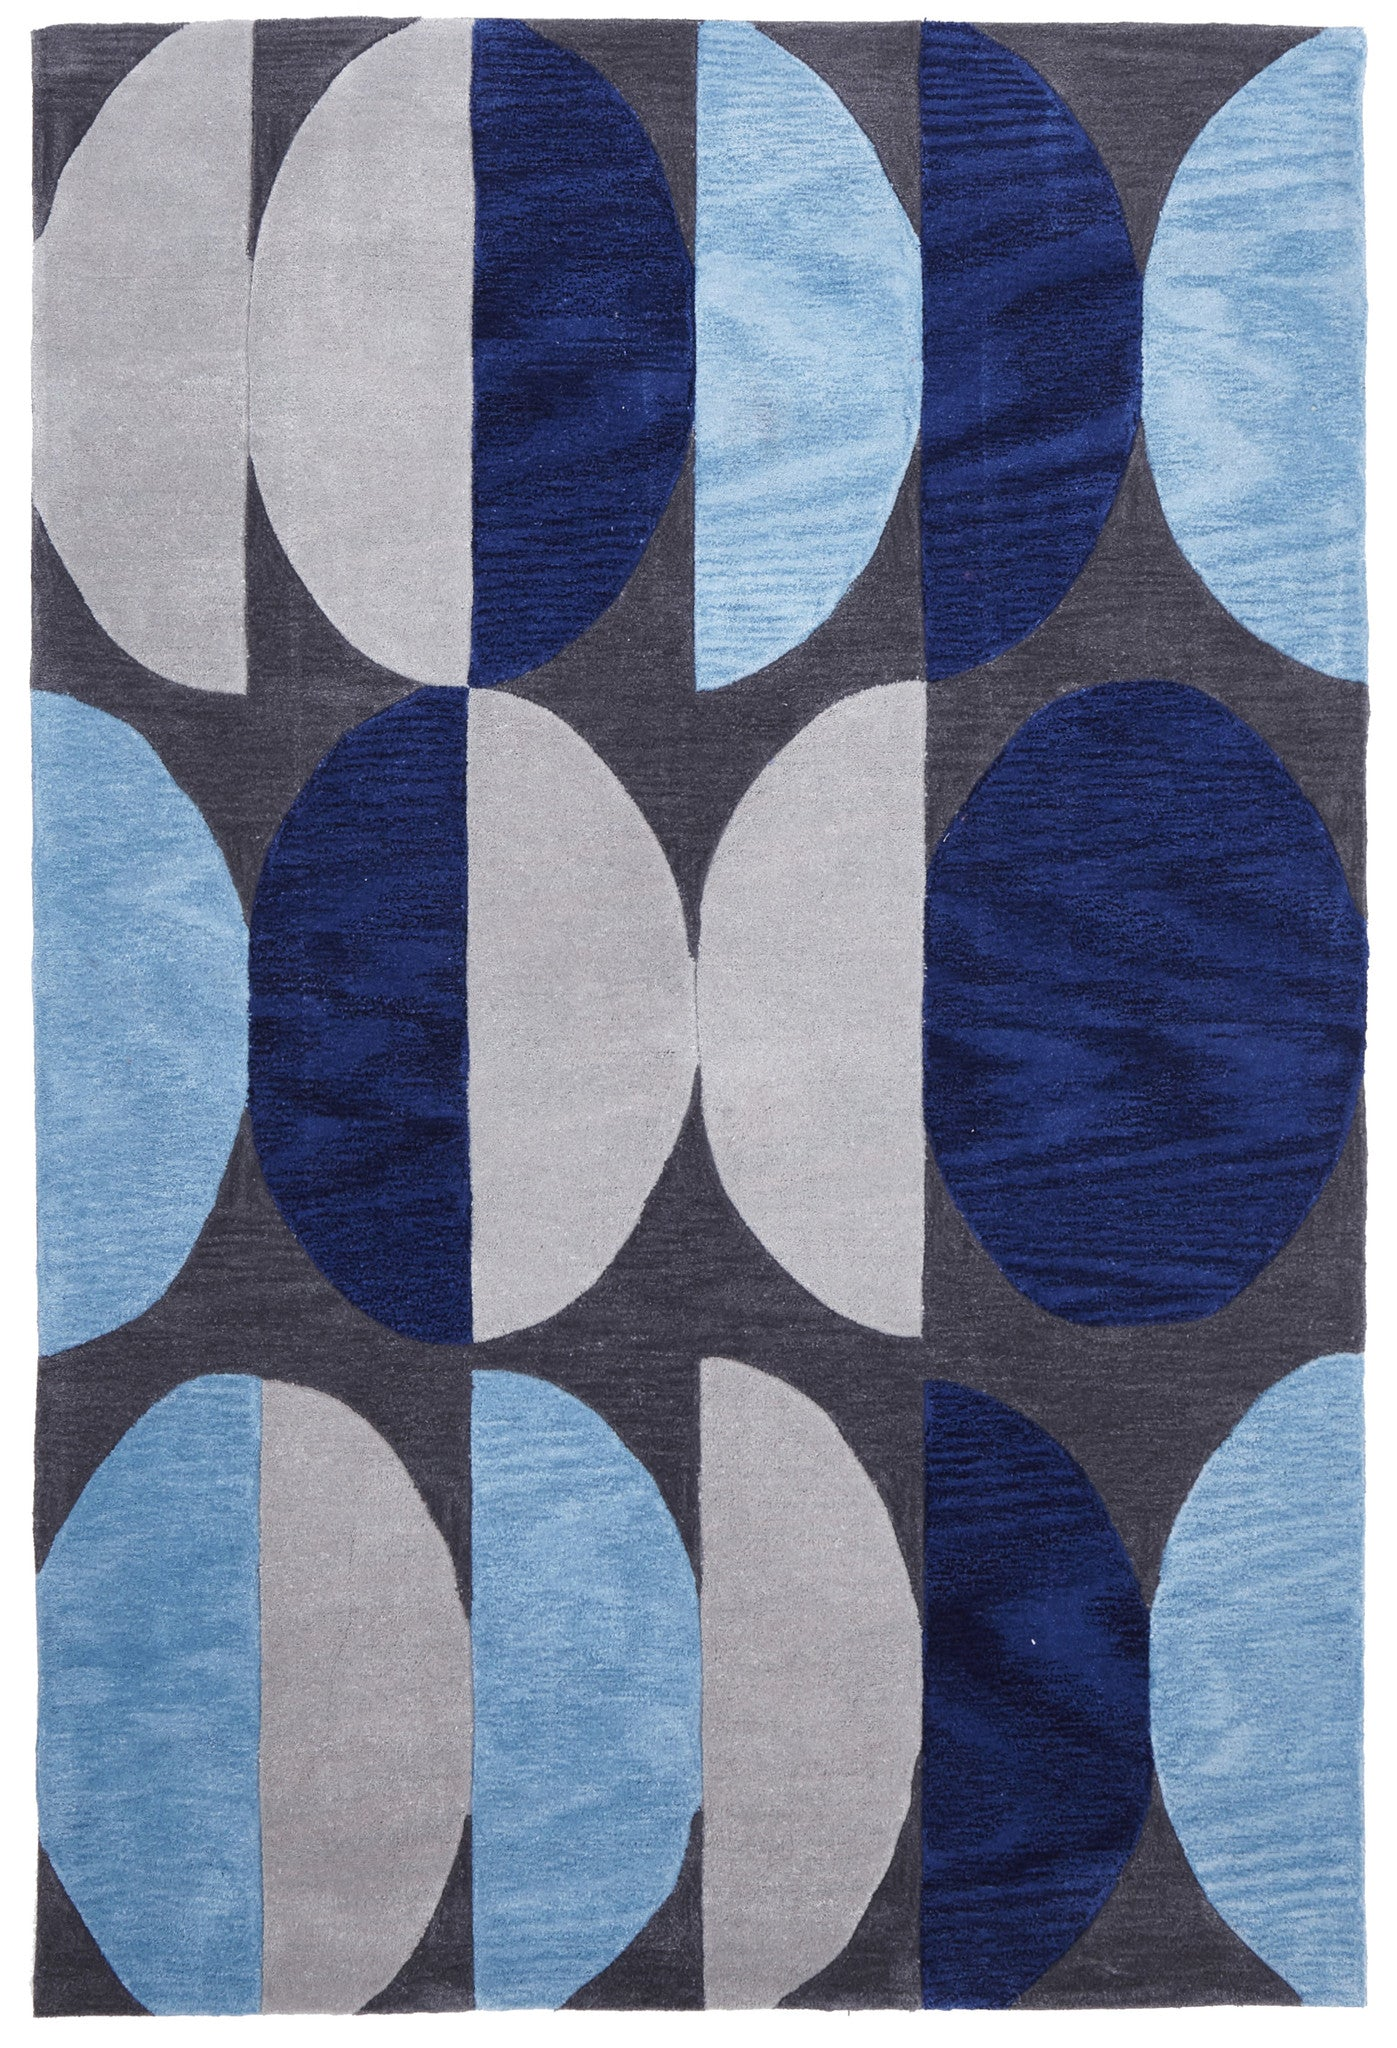 Gold 651 Rug - Blue Navy Grey